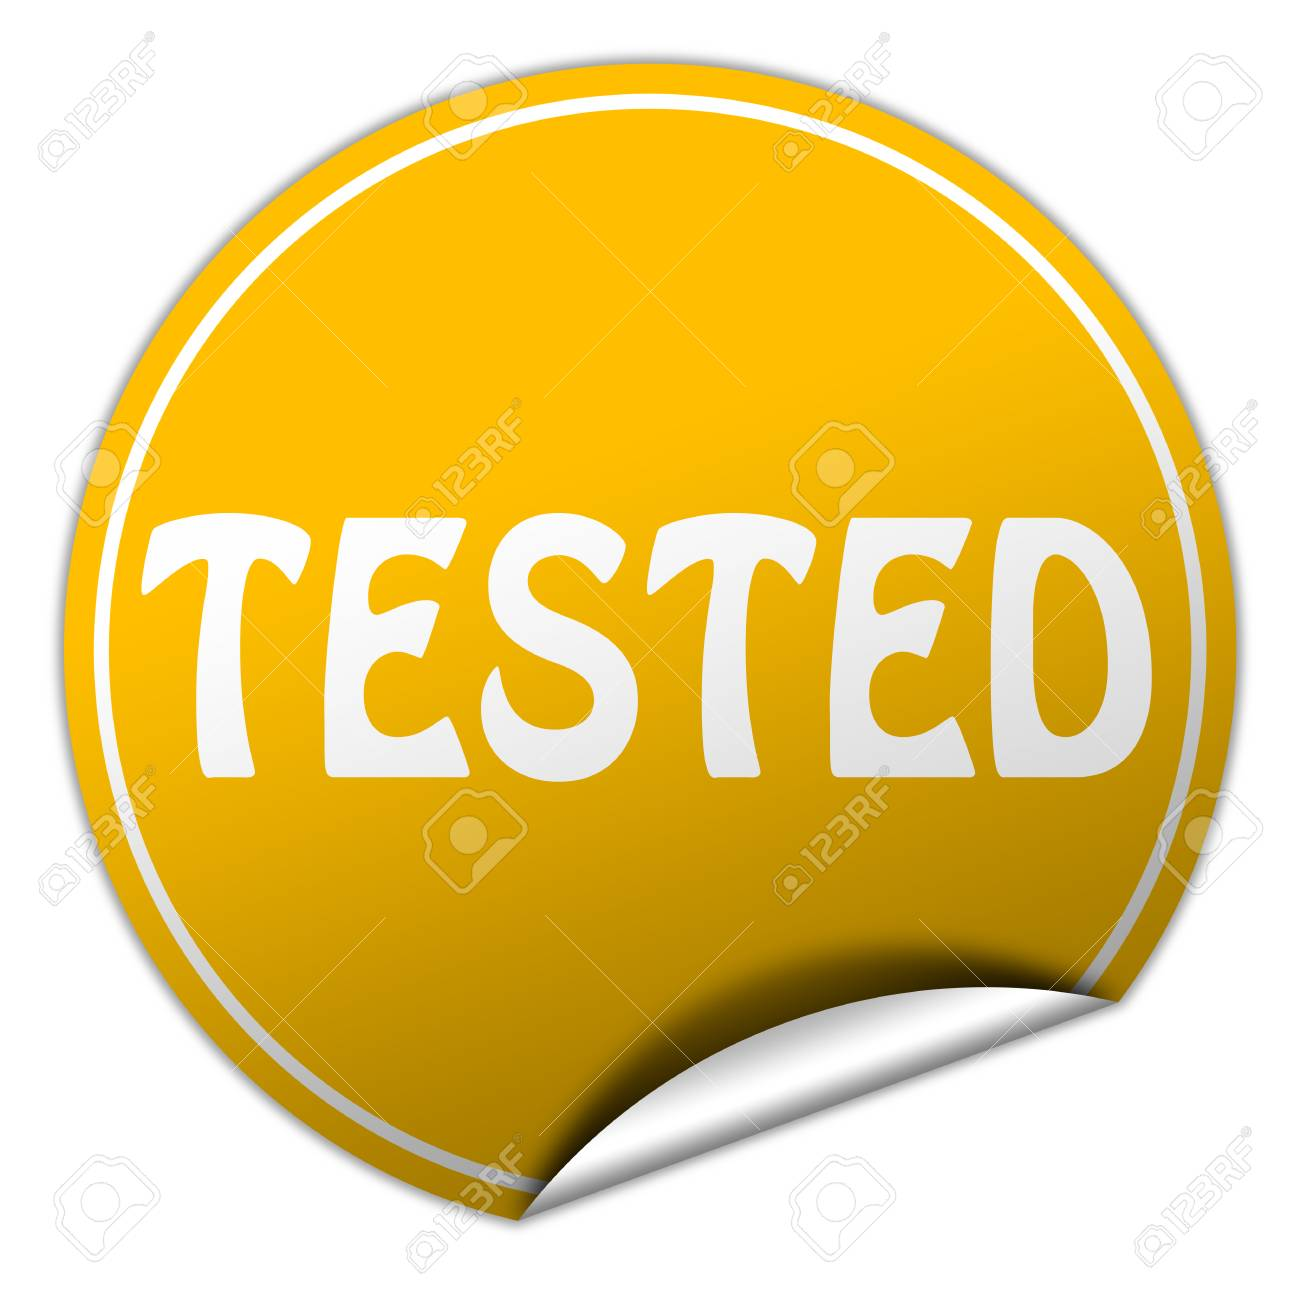 tested round yellow sticker on white background Stock Photo - 25159373